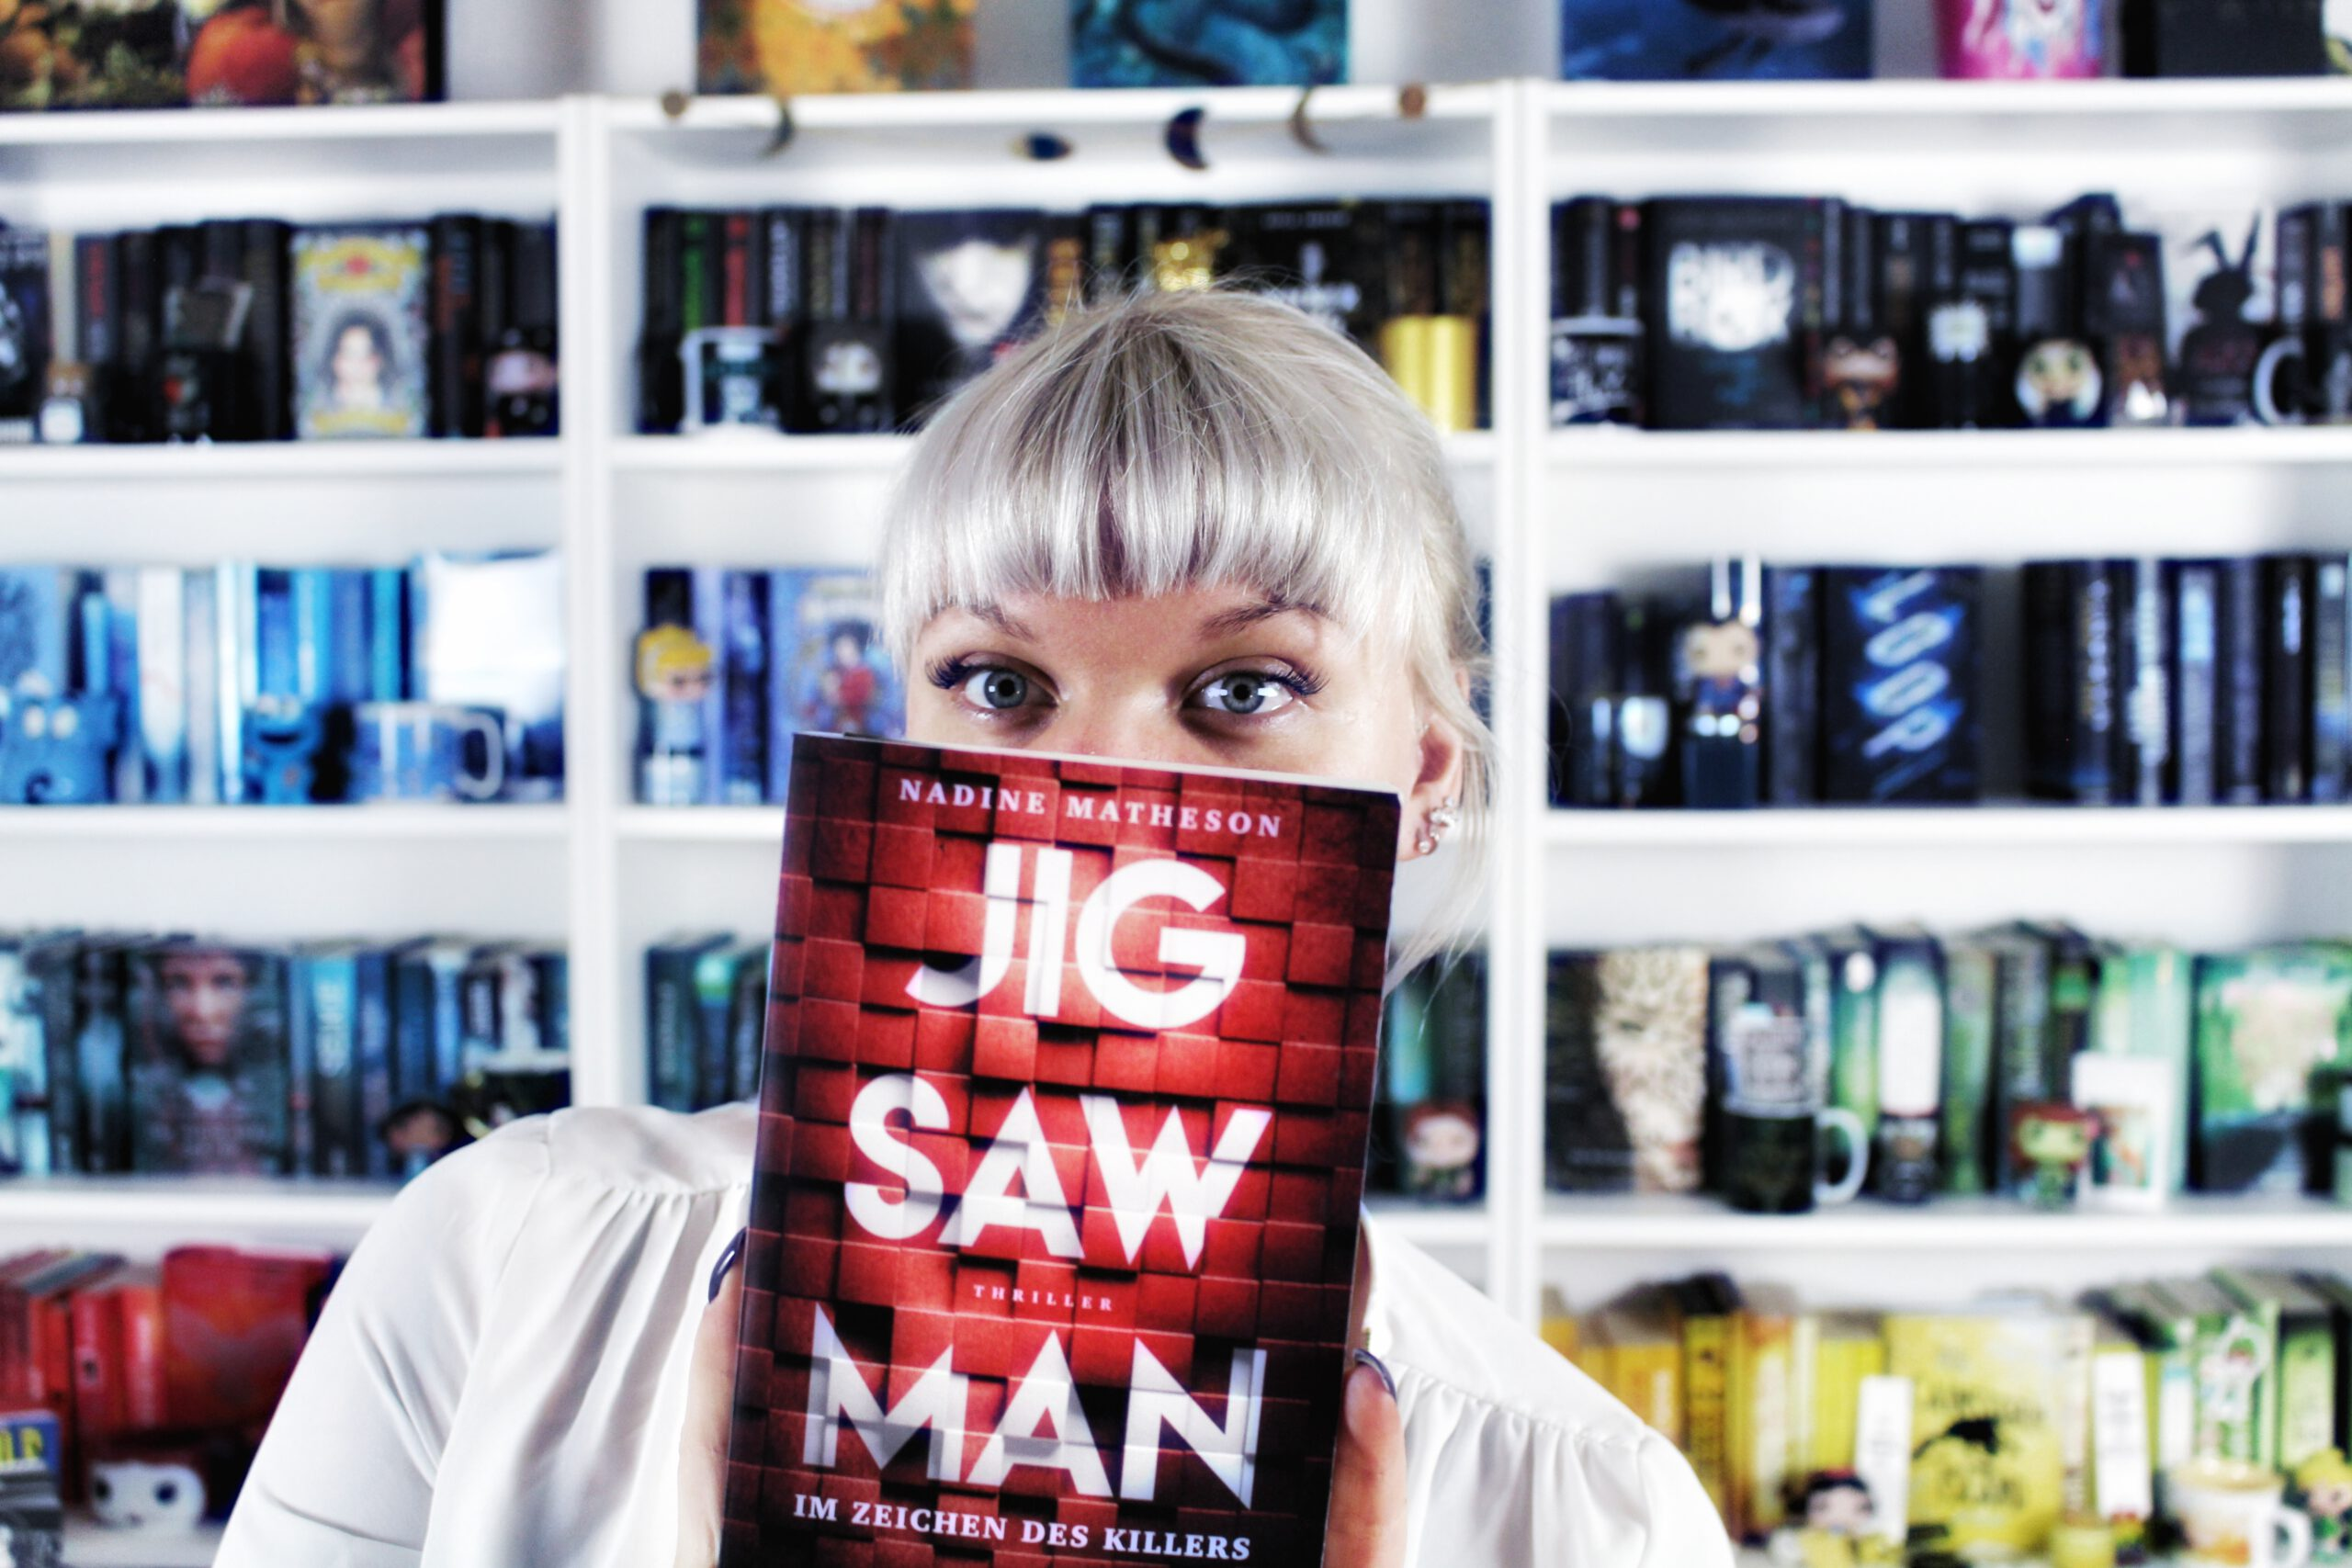 Rezension | Jigsaw Man von Nadine Matheson